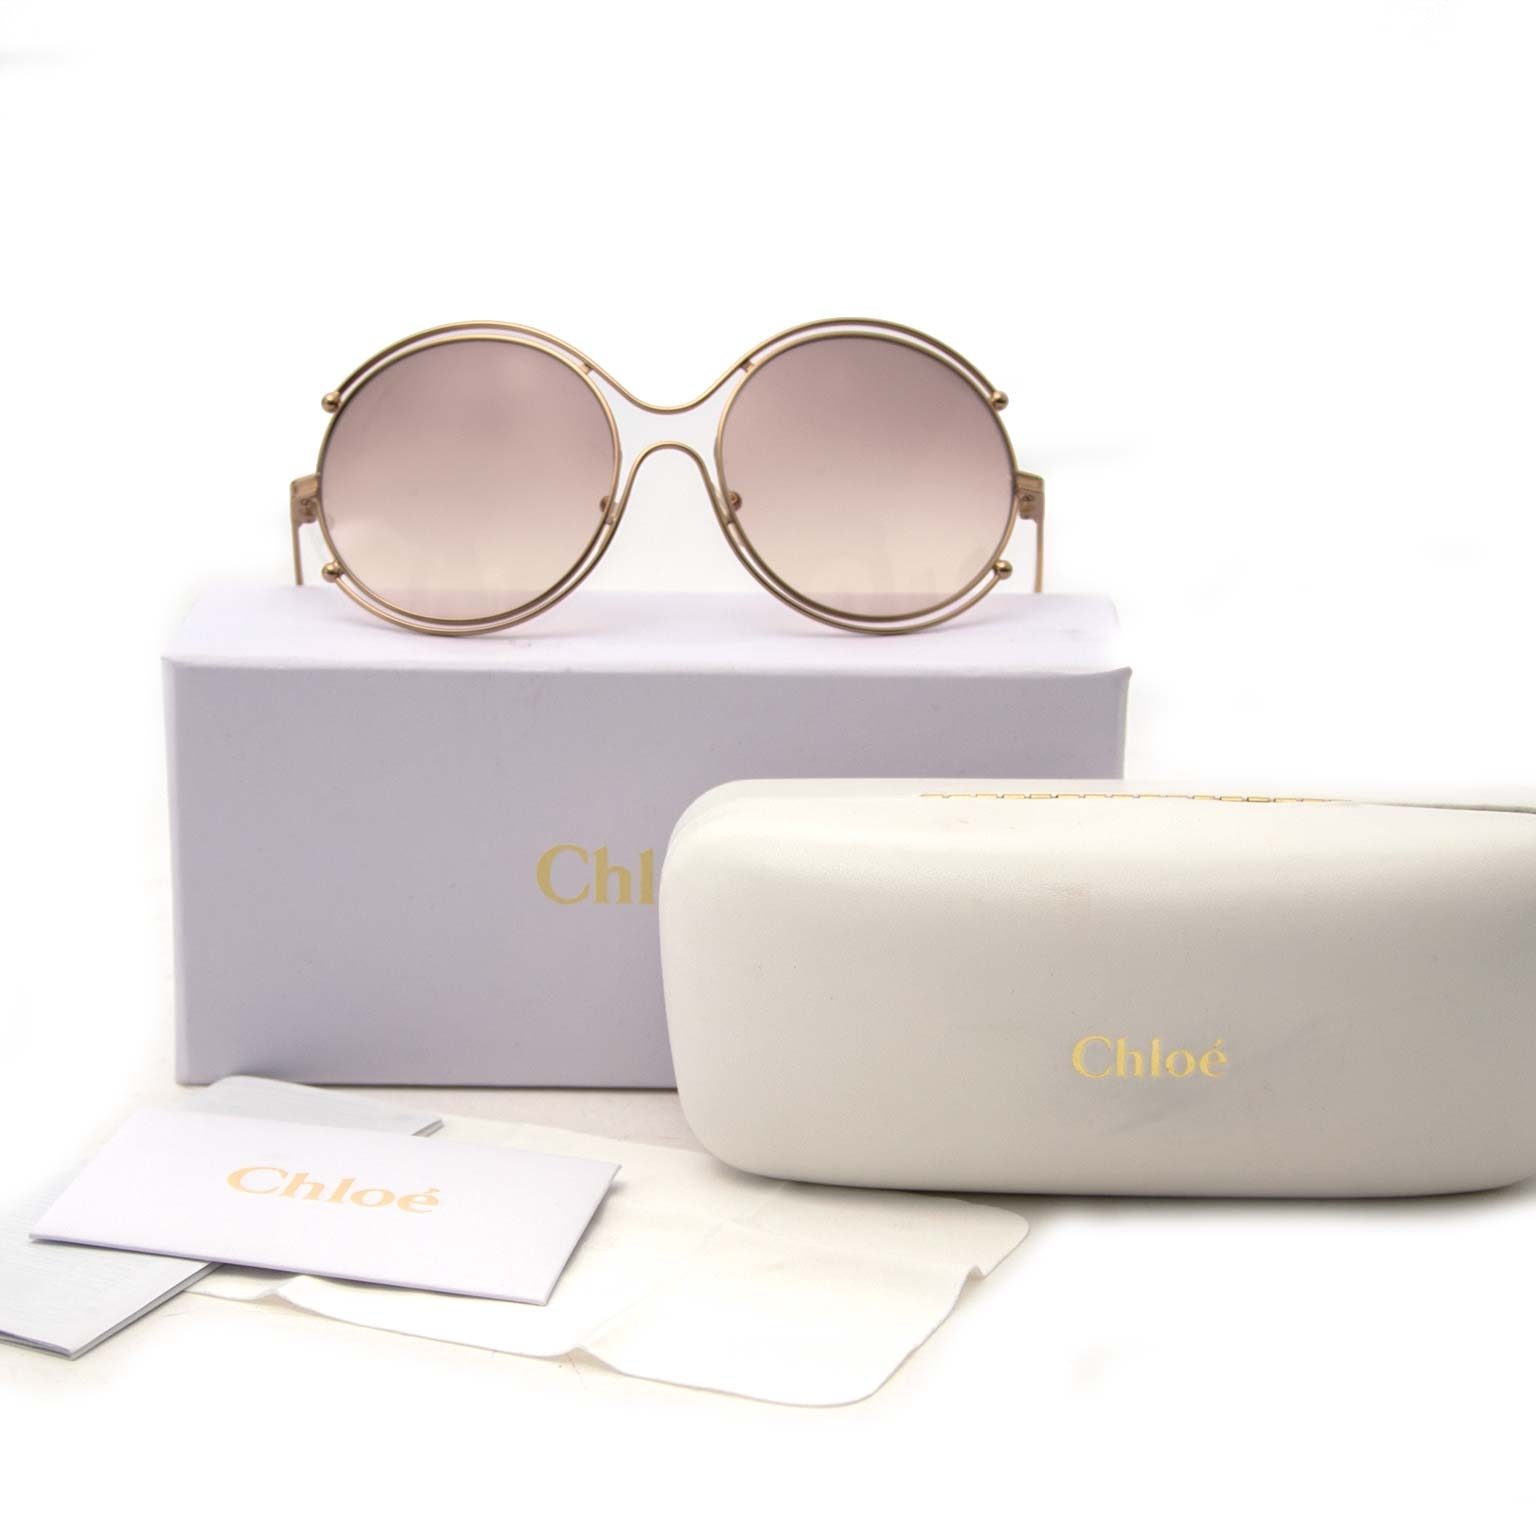 Chloé Isidora Rosé Round Sunglasses Buy authentic designer Chloé secondhand sunglasses at Labellov at the best price. Safe and secure shopping. Koop tweedehands authentieke Chloé zonnebril bij designer webwinkel labellov.